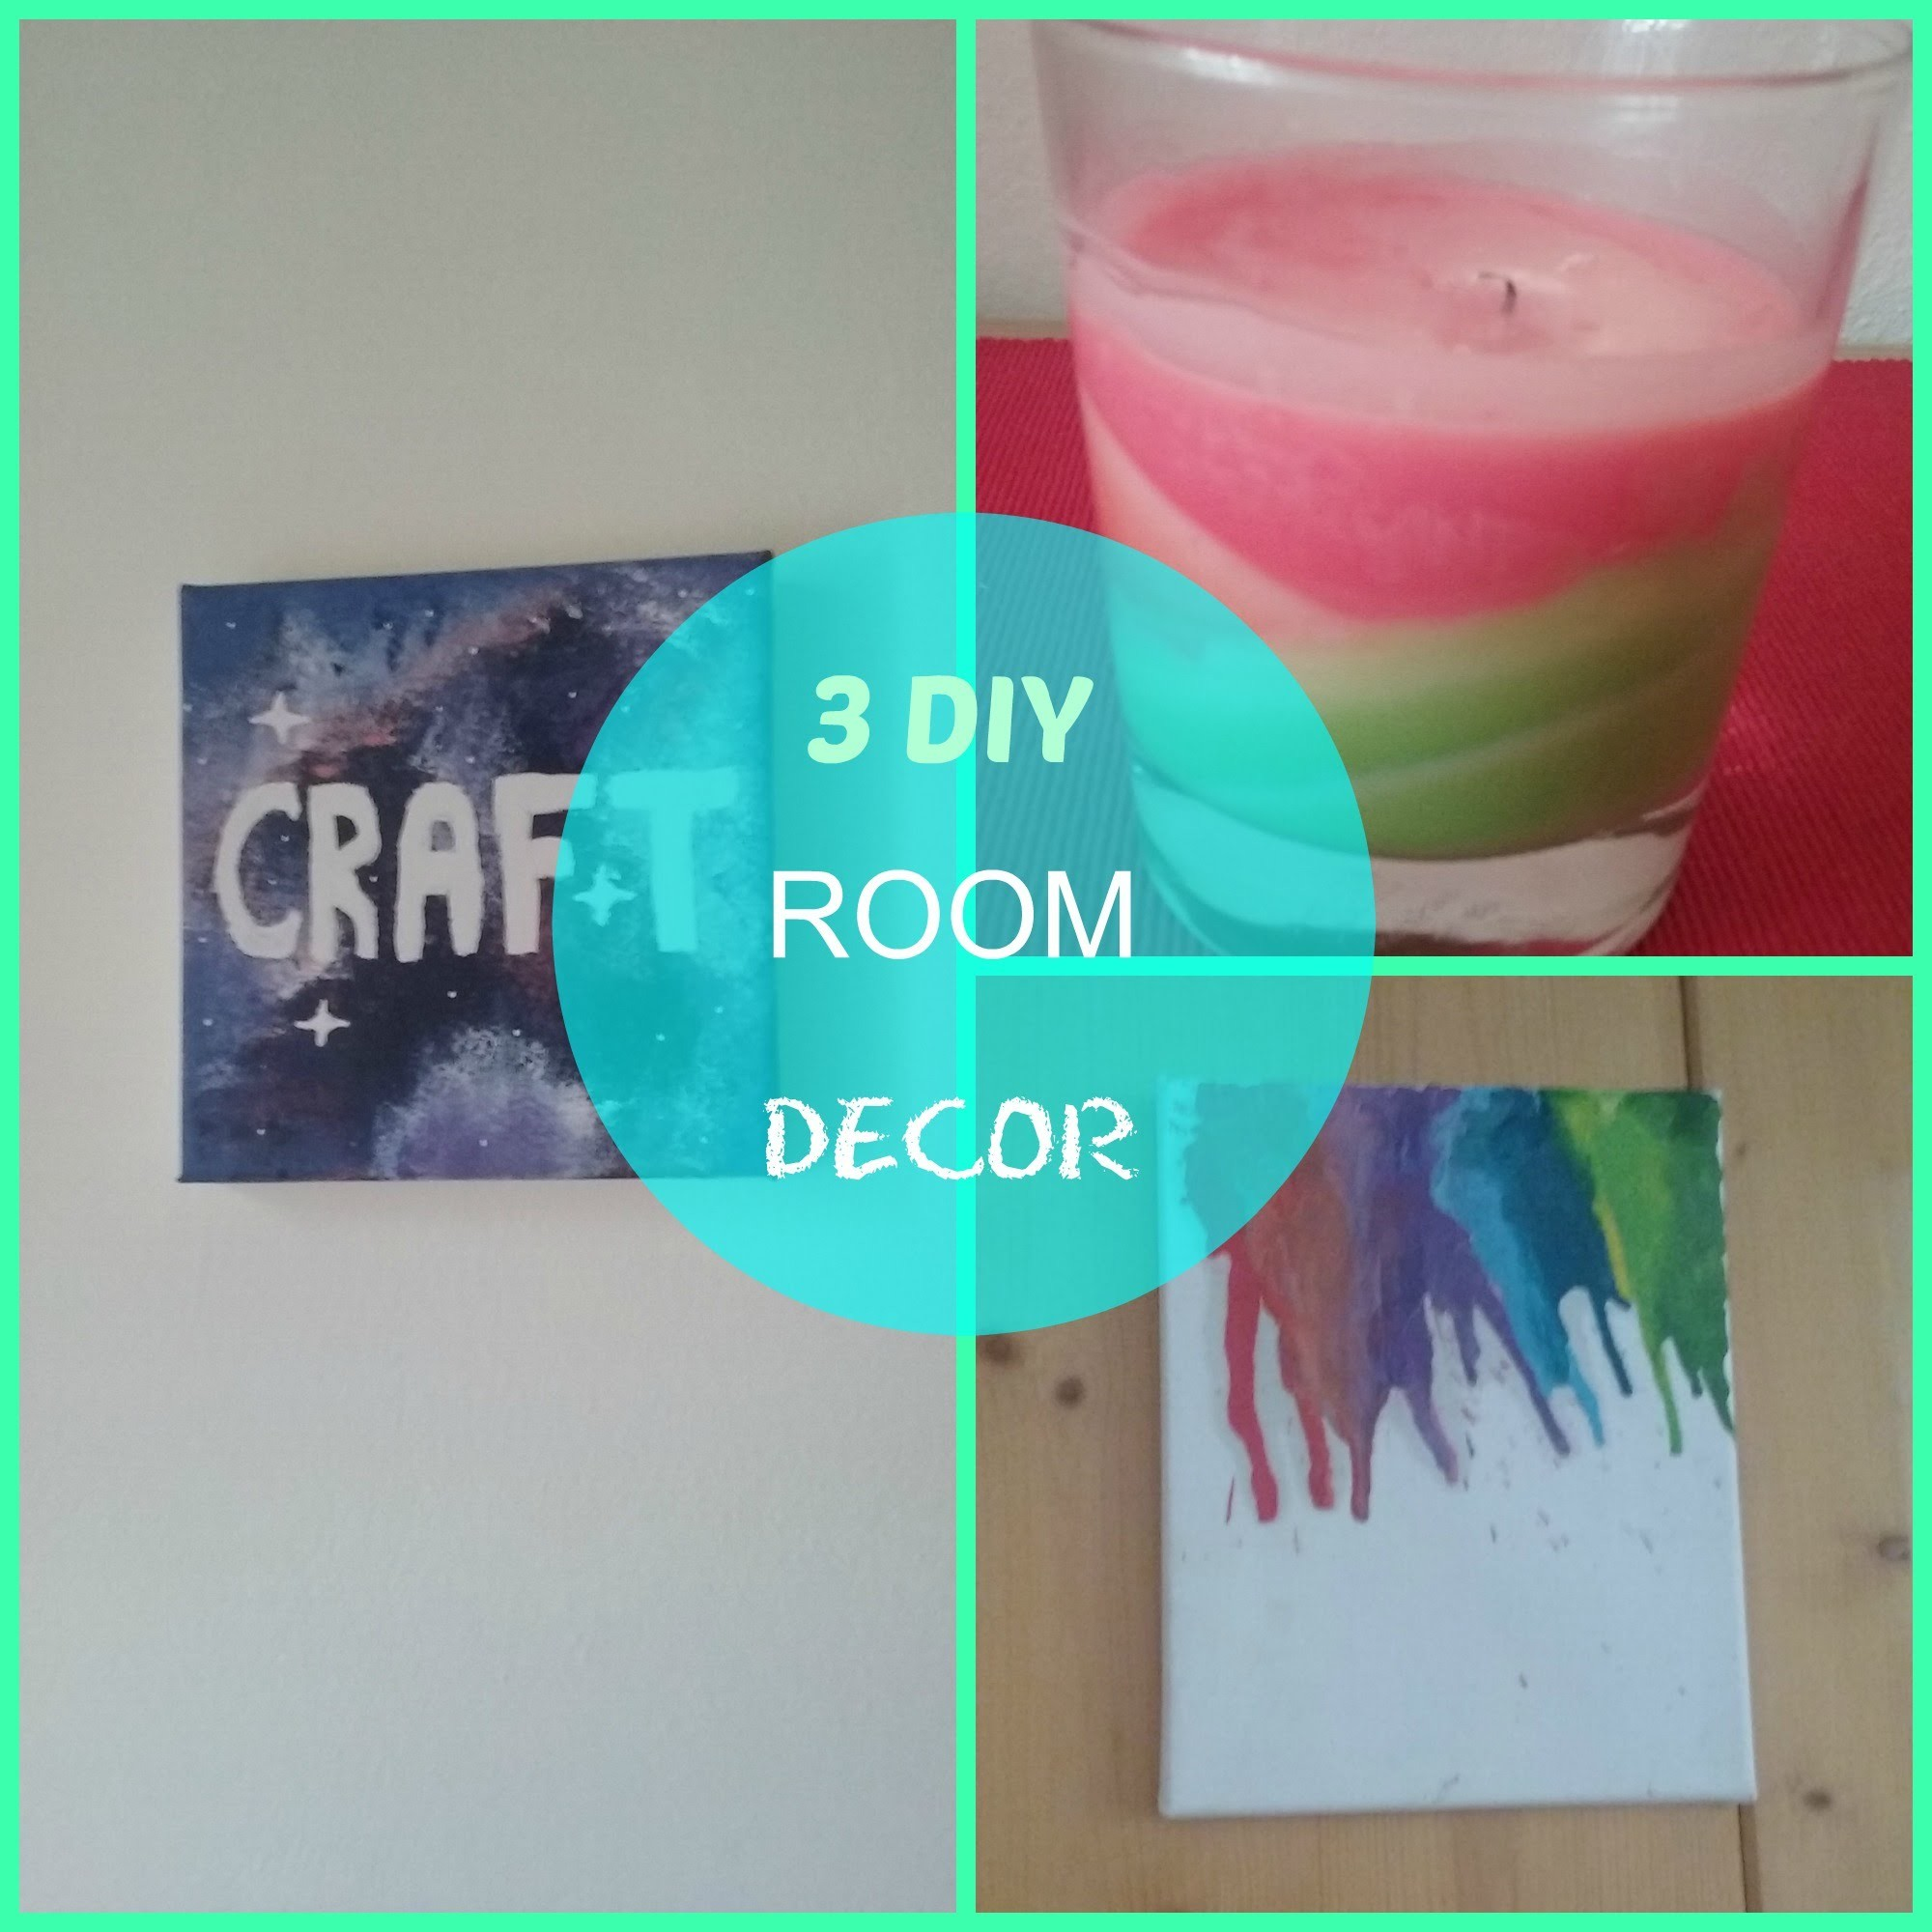 3 DIY ROOM DECOR